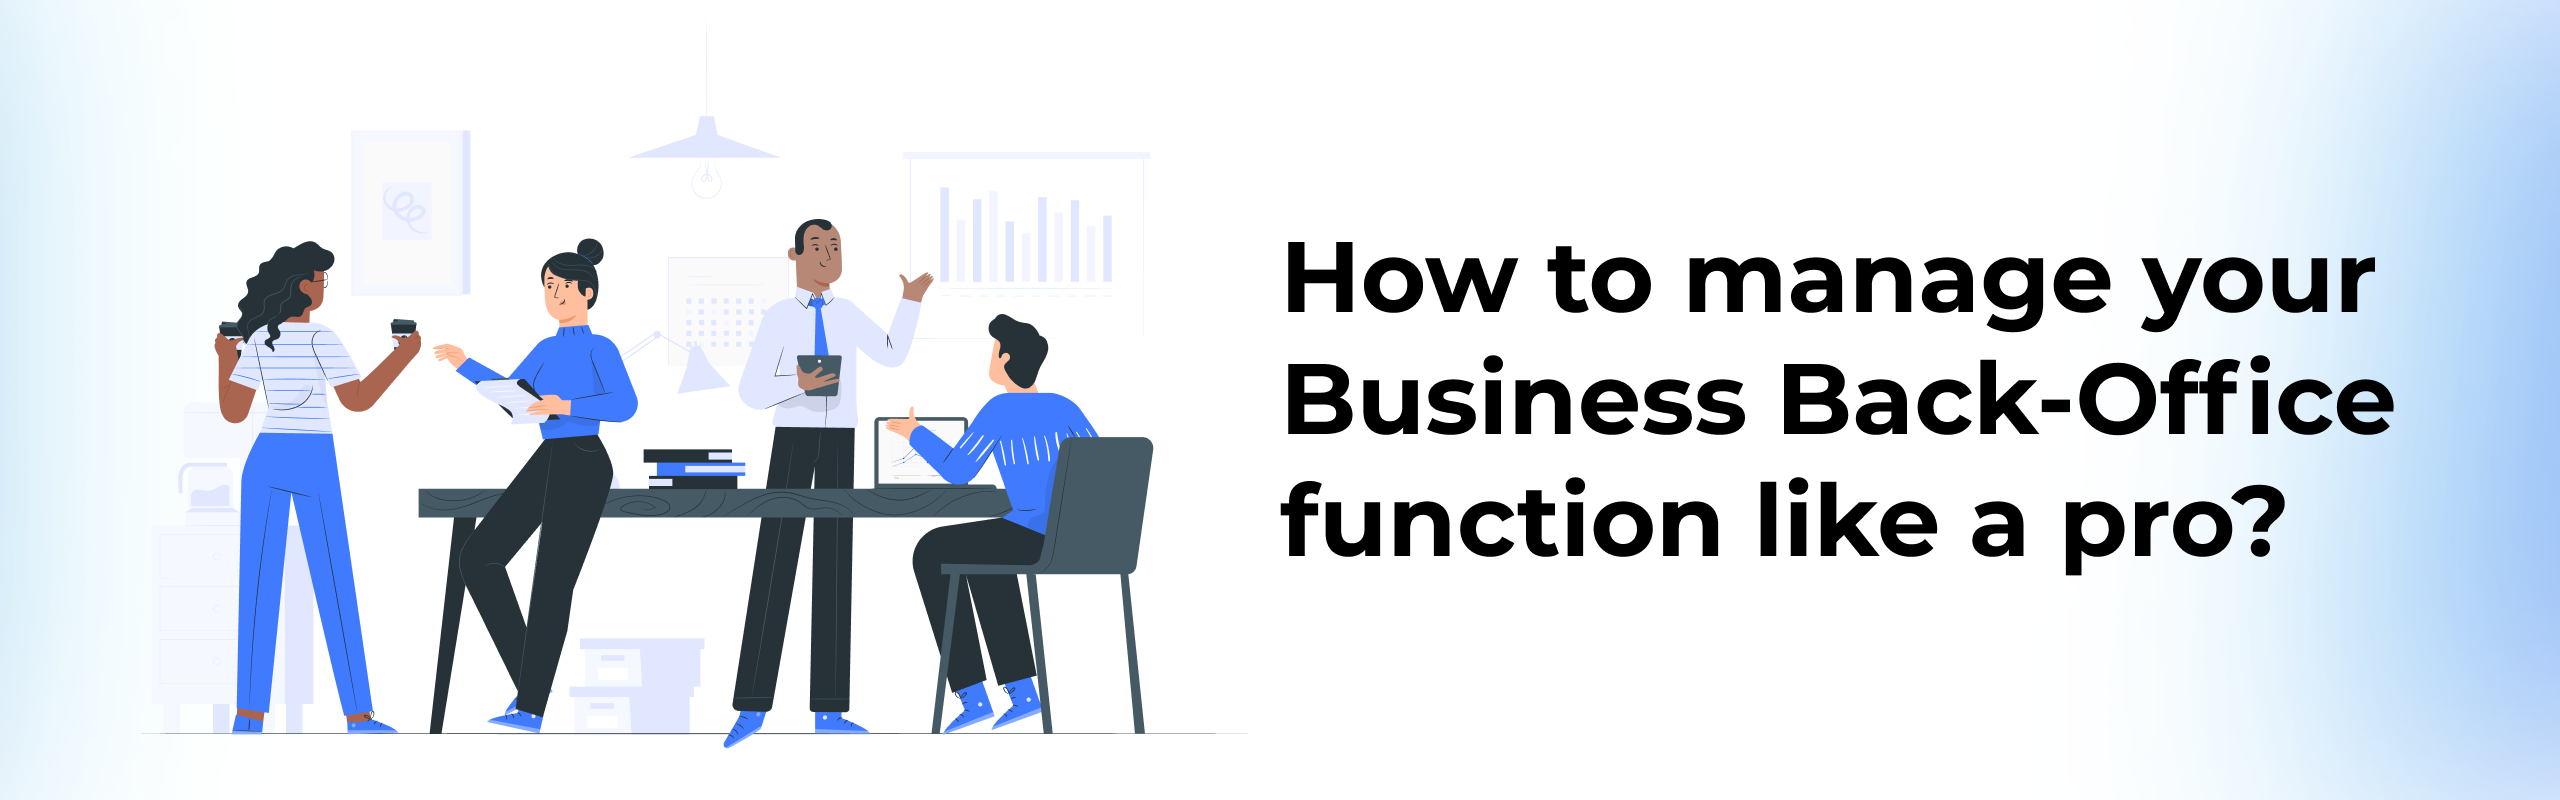 How to manage your Business Back-Office function like a pro